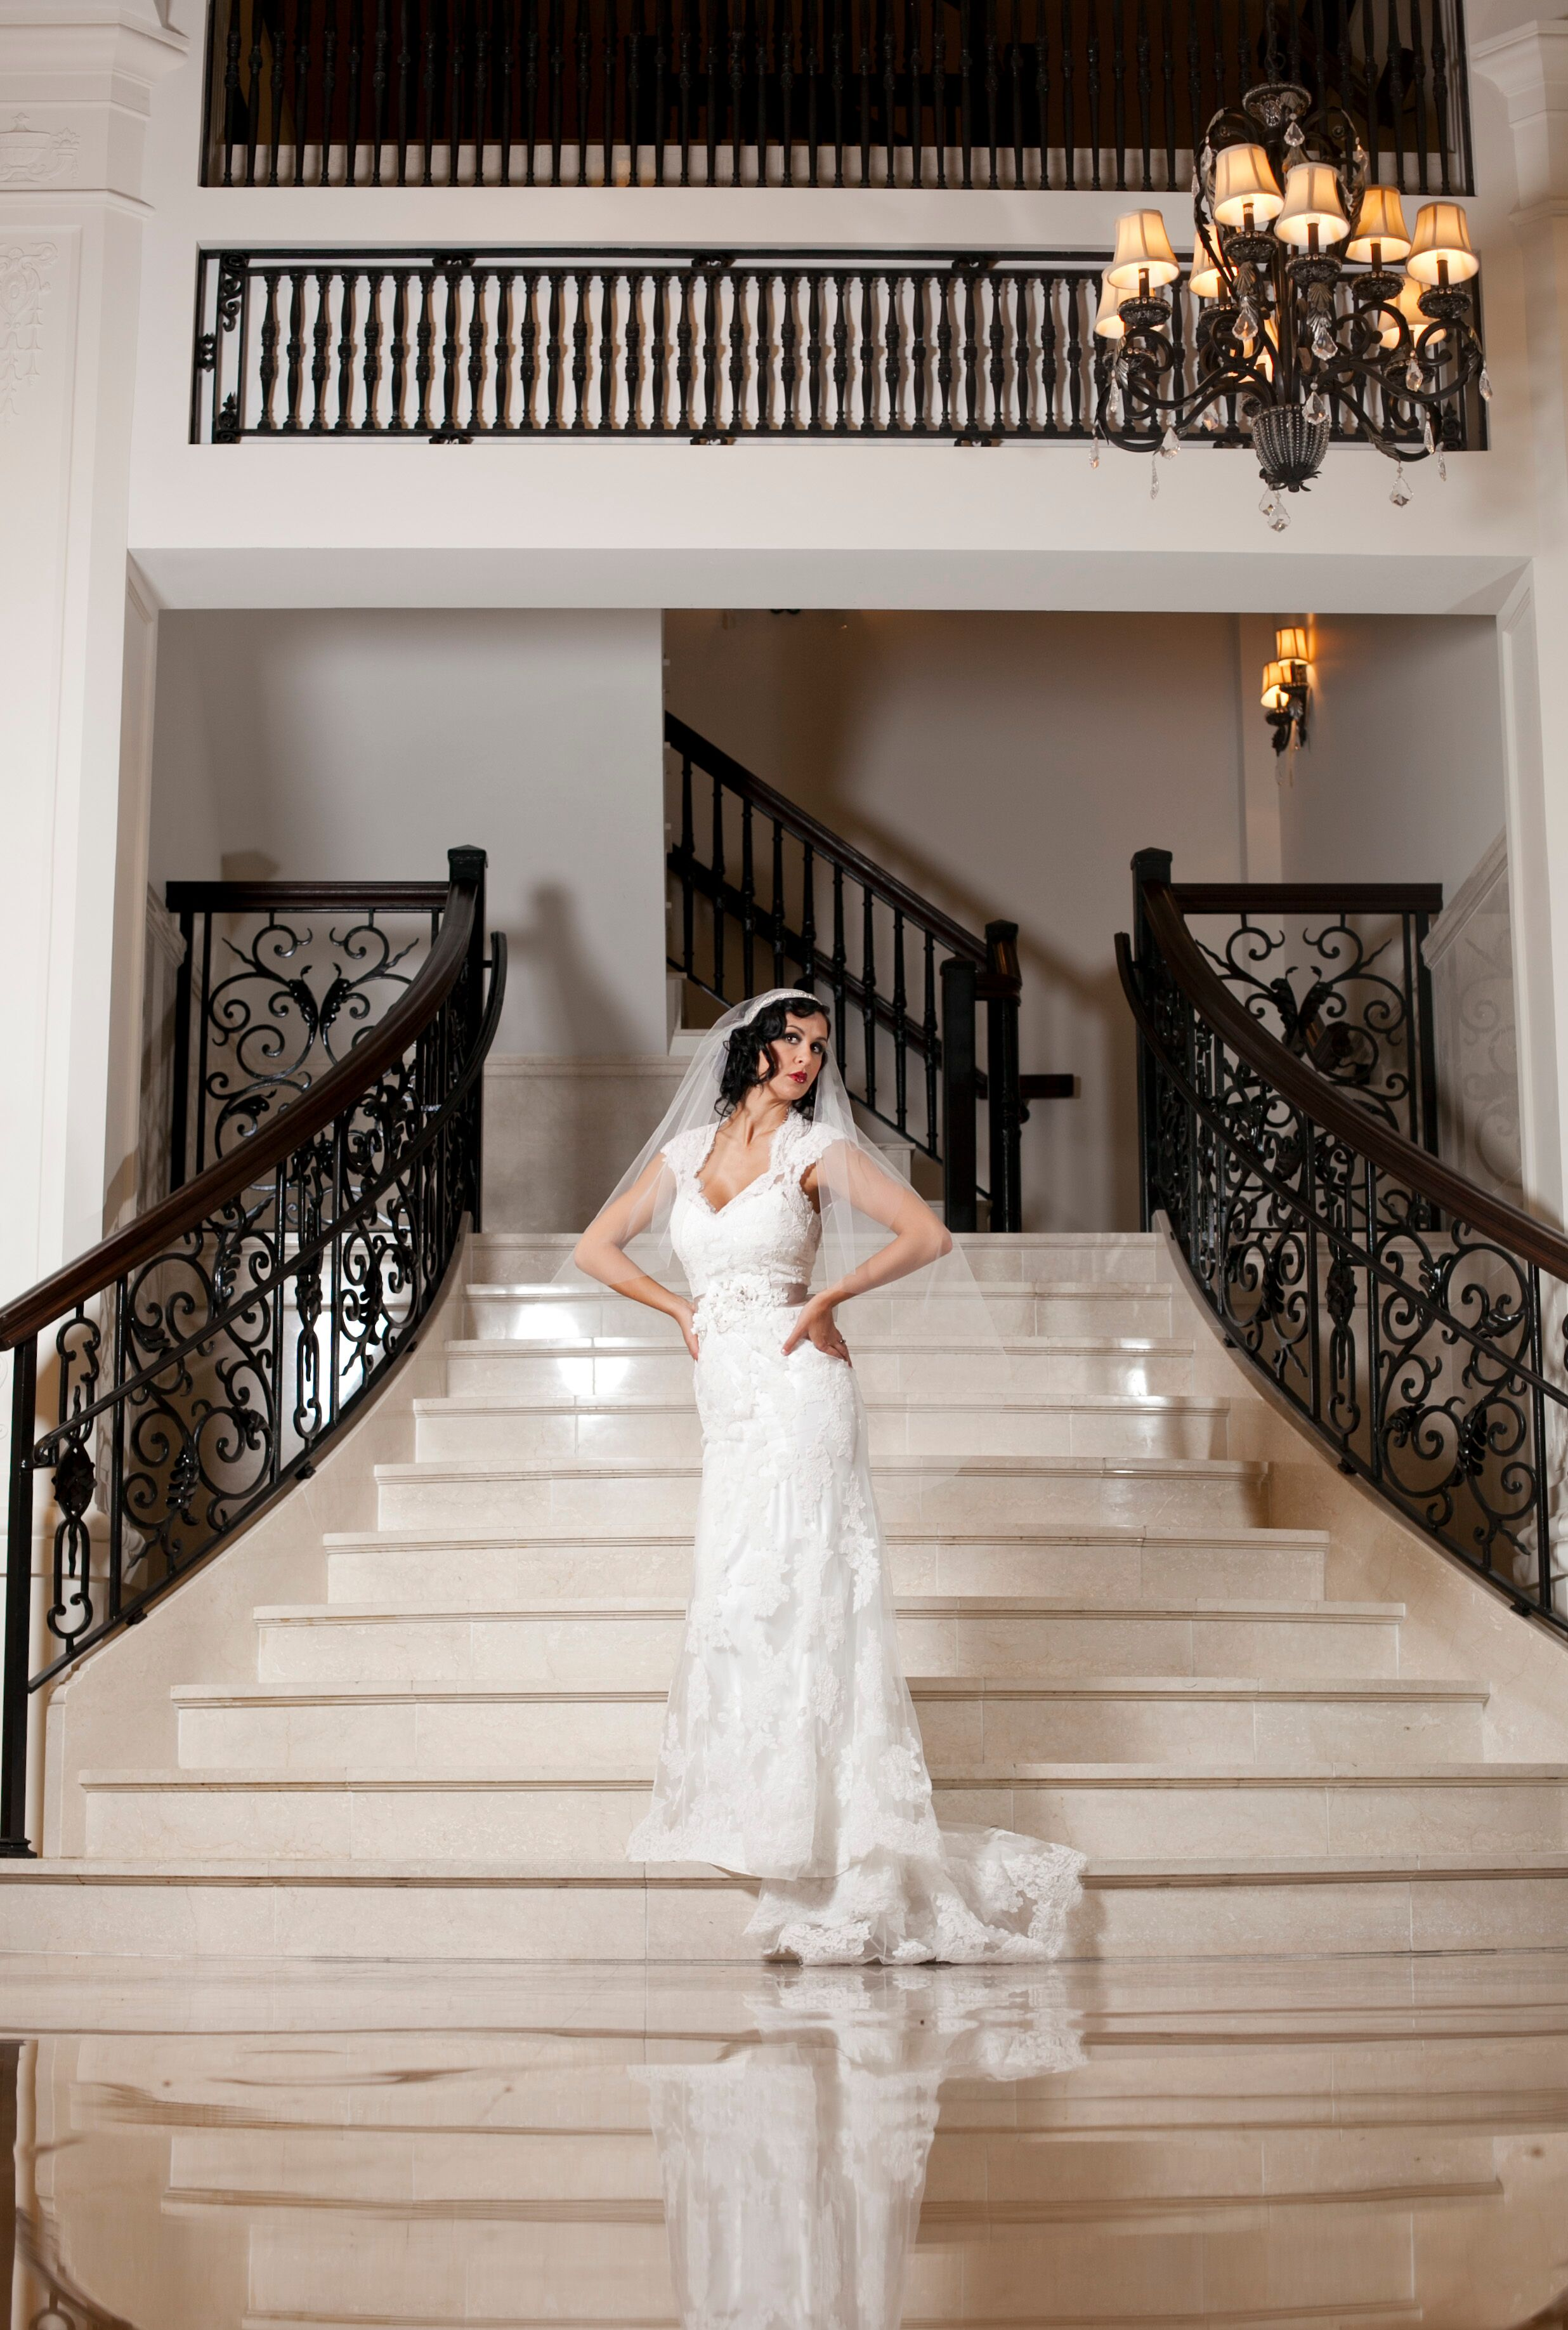 Wedding reception venues in jackson ms the knot king edward hotel hilton garden inn jackson downtown ombrellifo Gallery